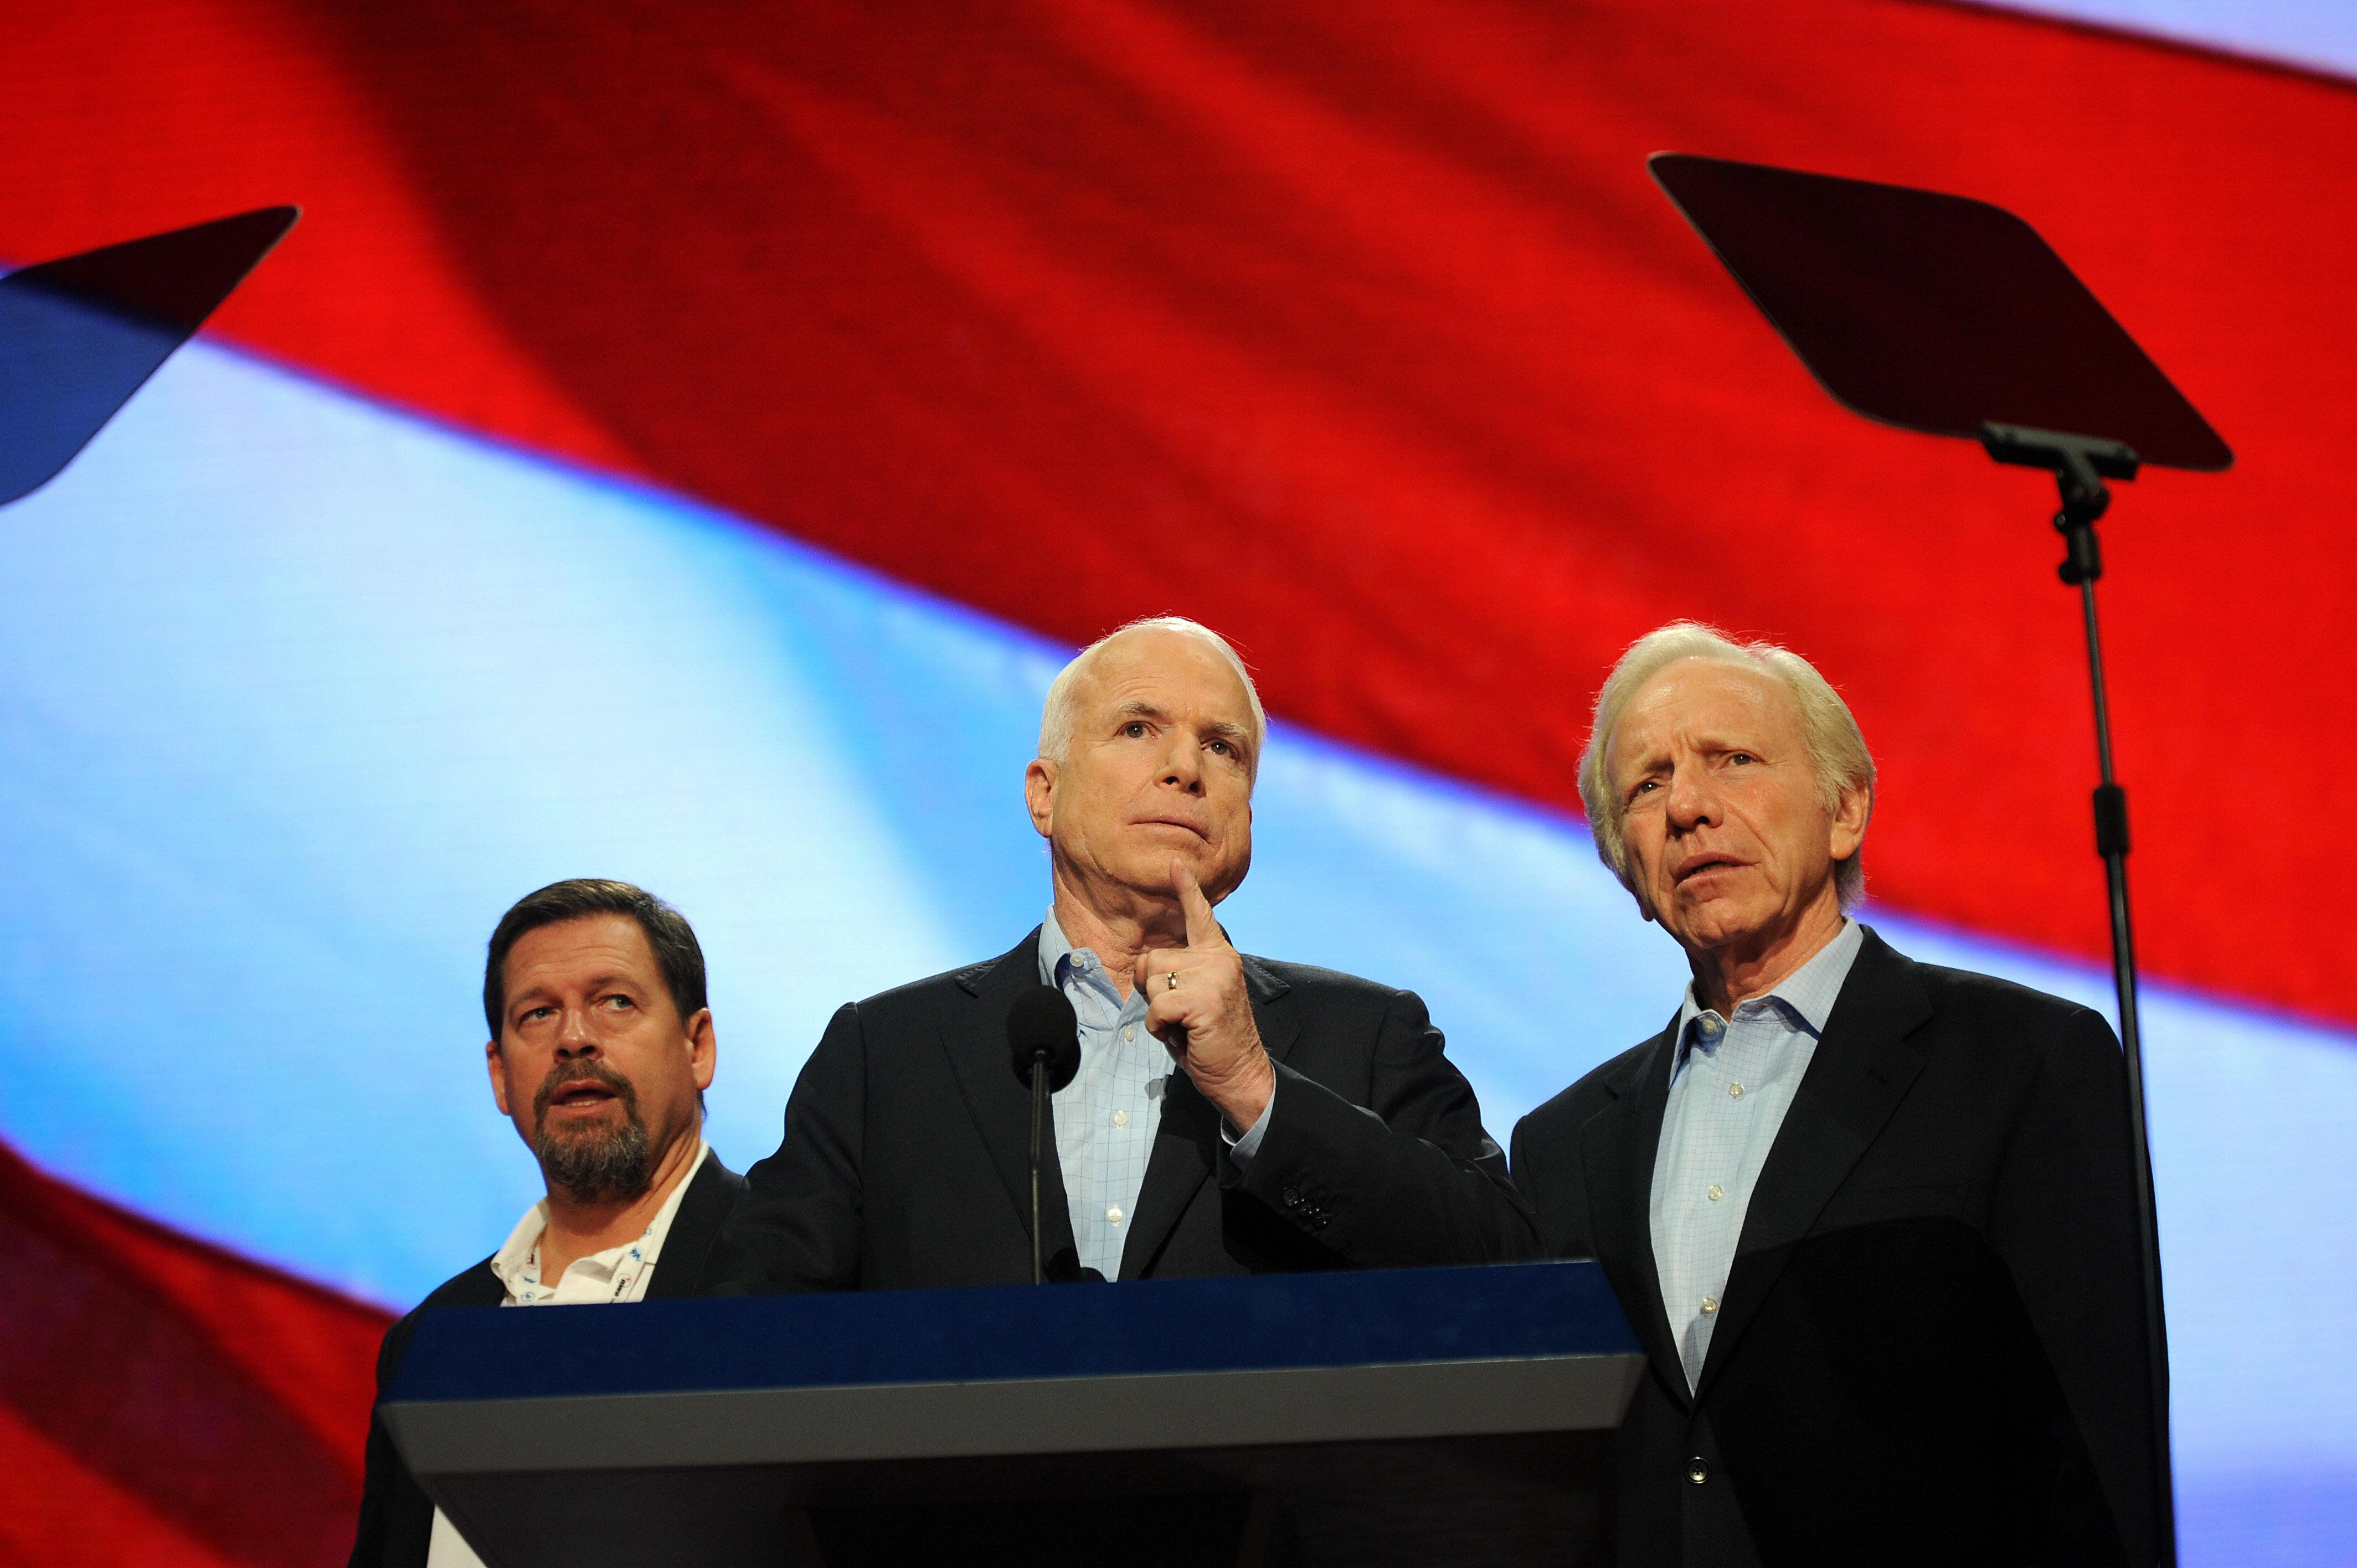 US Republican presidential candidate Arizona Senator John McCain (C) is flanked by US Senator Joe Lieberman (I-CT)  and senior advisor Mark Salter (L) during a walk-through to check the podium and stage before his keynote address this evening, at the Republican National Convention (RNC) in St. Paul, Minnesota on September 4, 2008.  AFP PHOTO Robyn BECK (Photo credit should read ROBYN BECK/AFP/Getty Images)